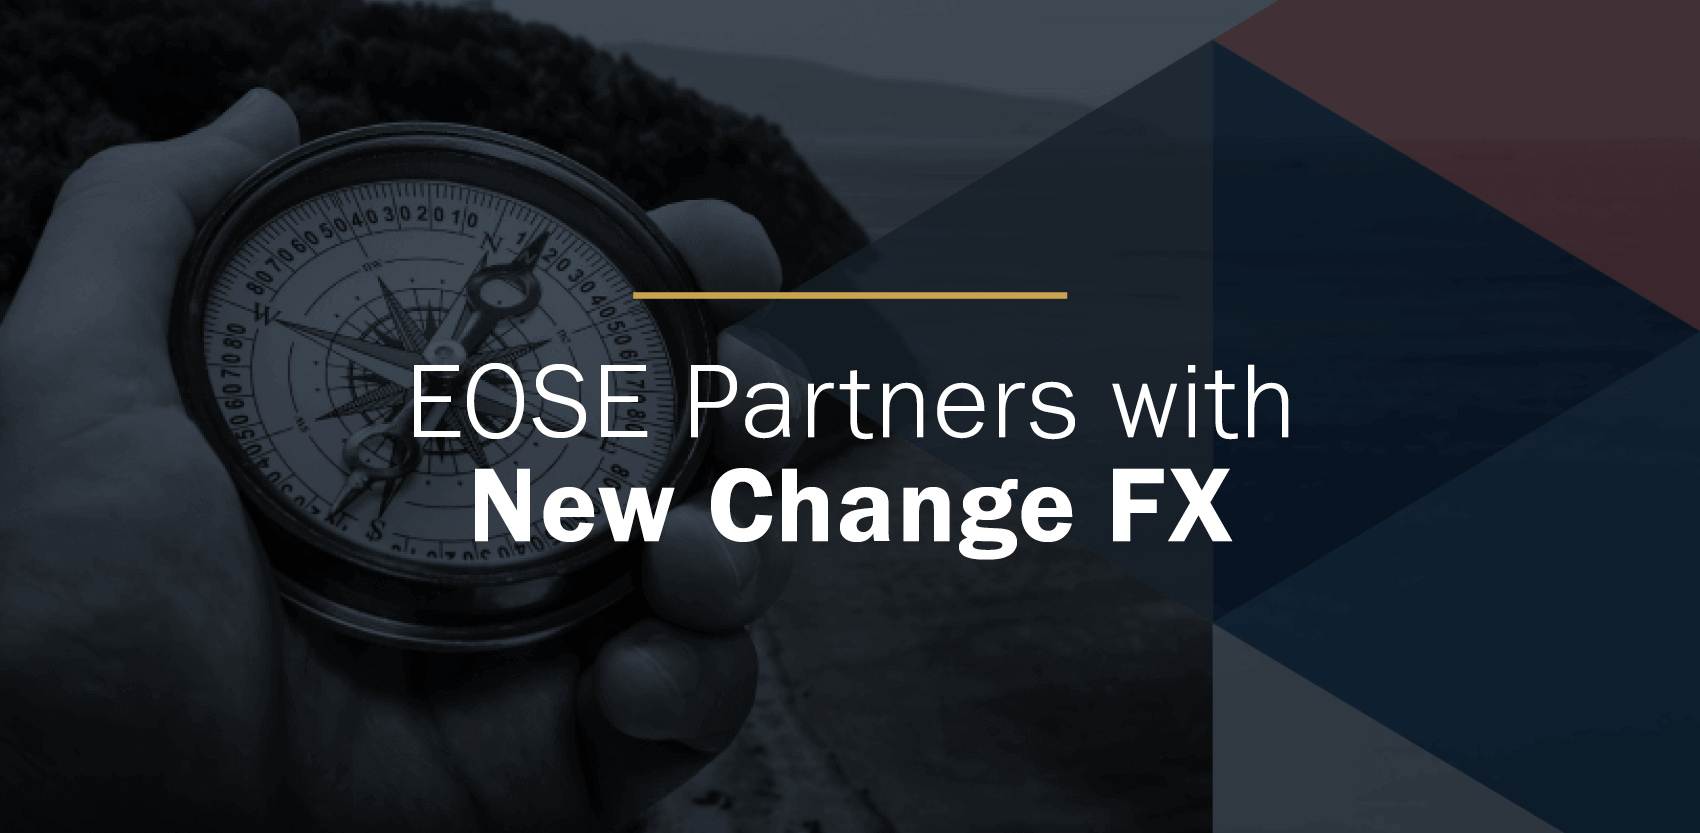 New Change FX post feature image